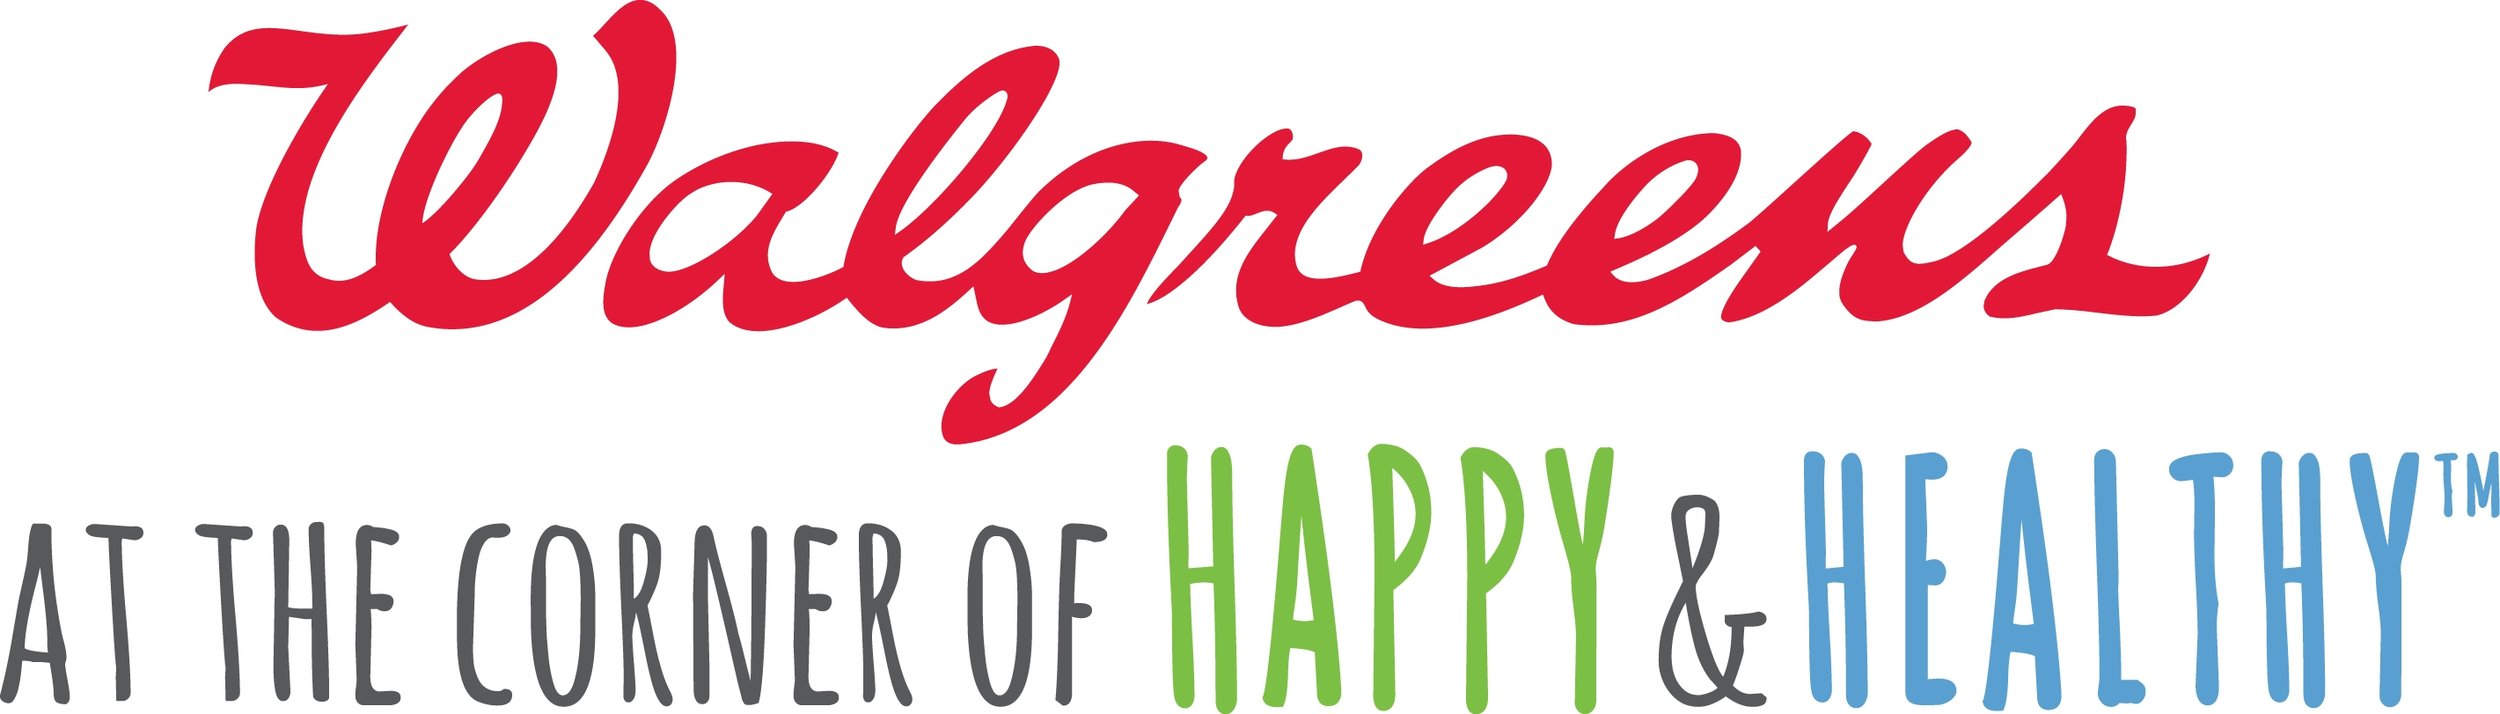 Walgreens_happy_healthy logo.jpg